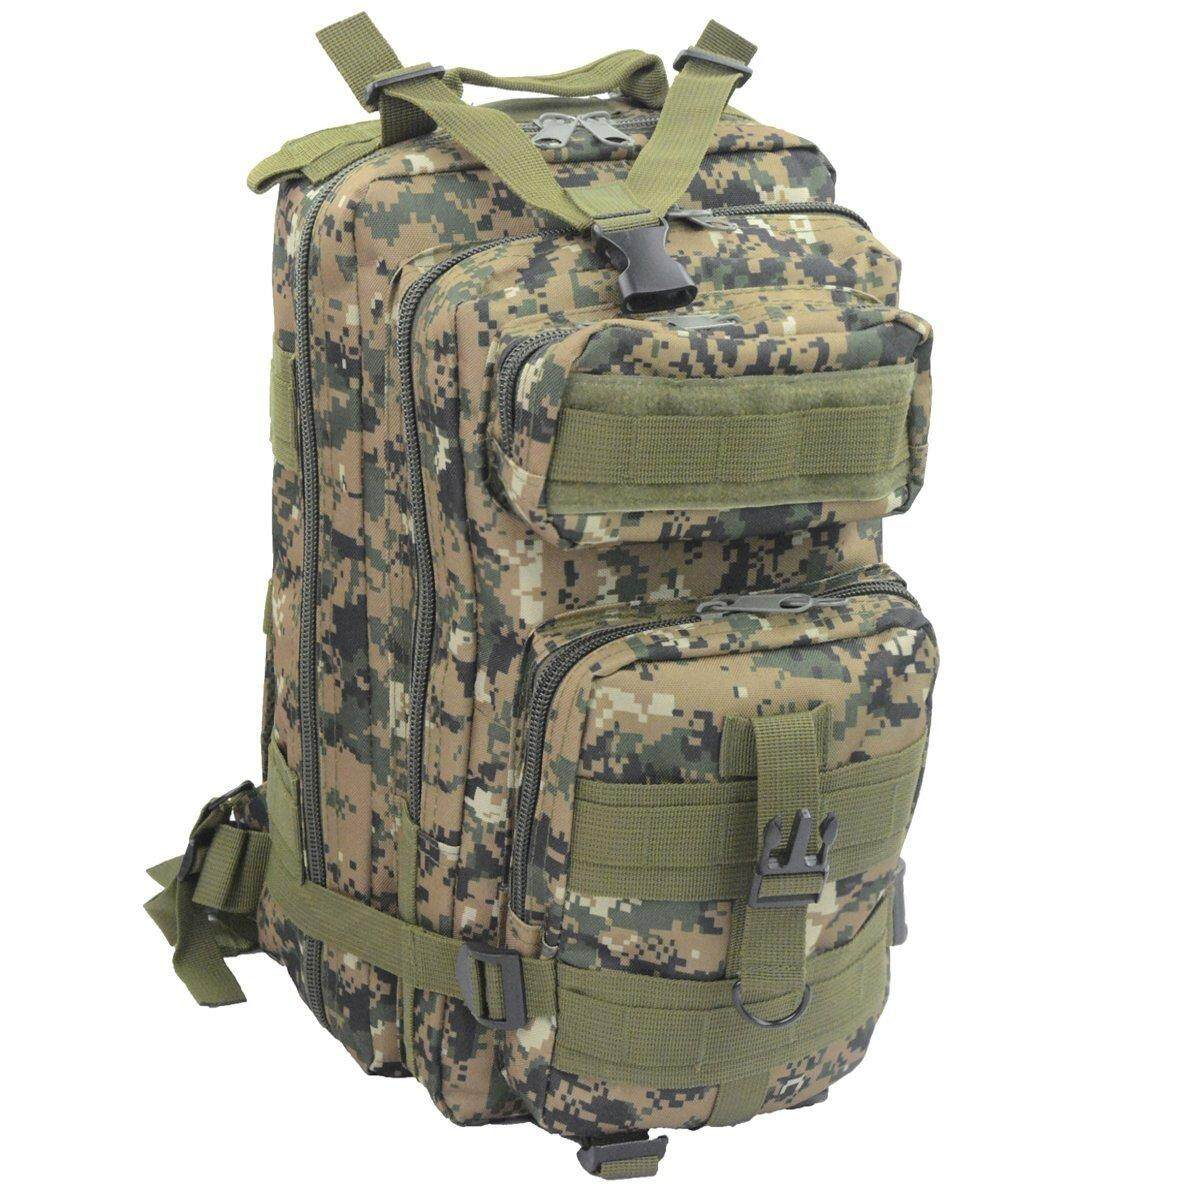 Kobwa Outdoor Camping Hiking 25l 3p Tactical Backpack (digital Camouflage) - Intl By Kobwa Direct.